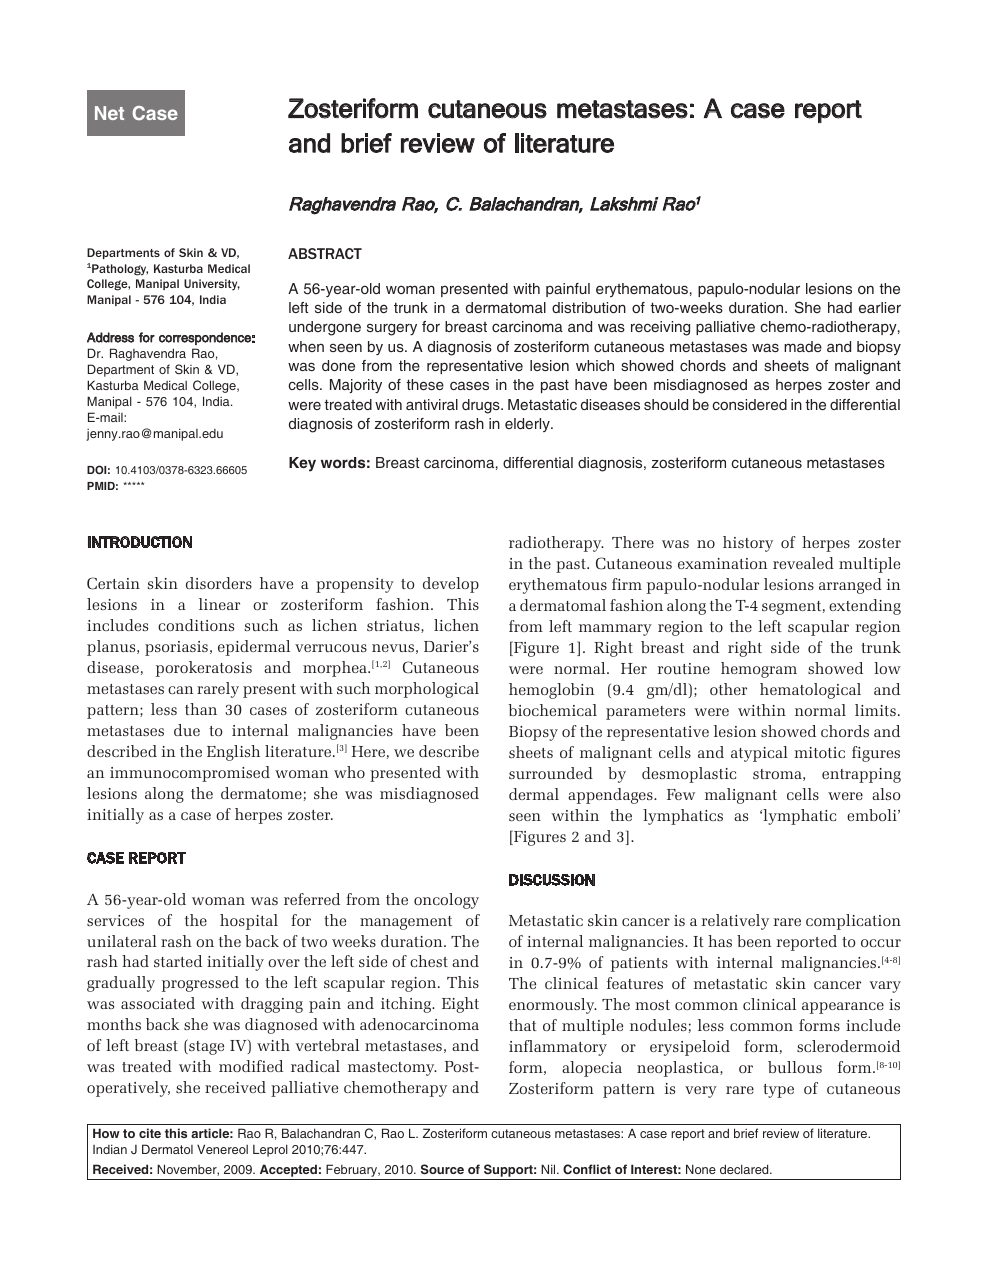 Zosteriform cutaneous metastases: A case report and brief review of